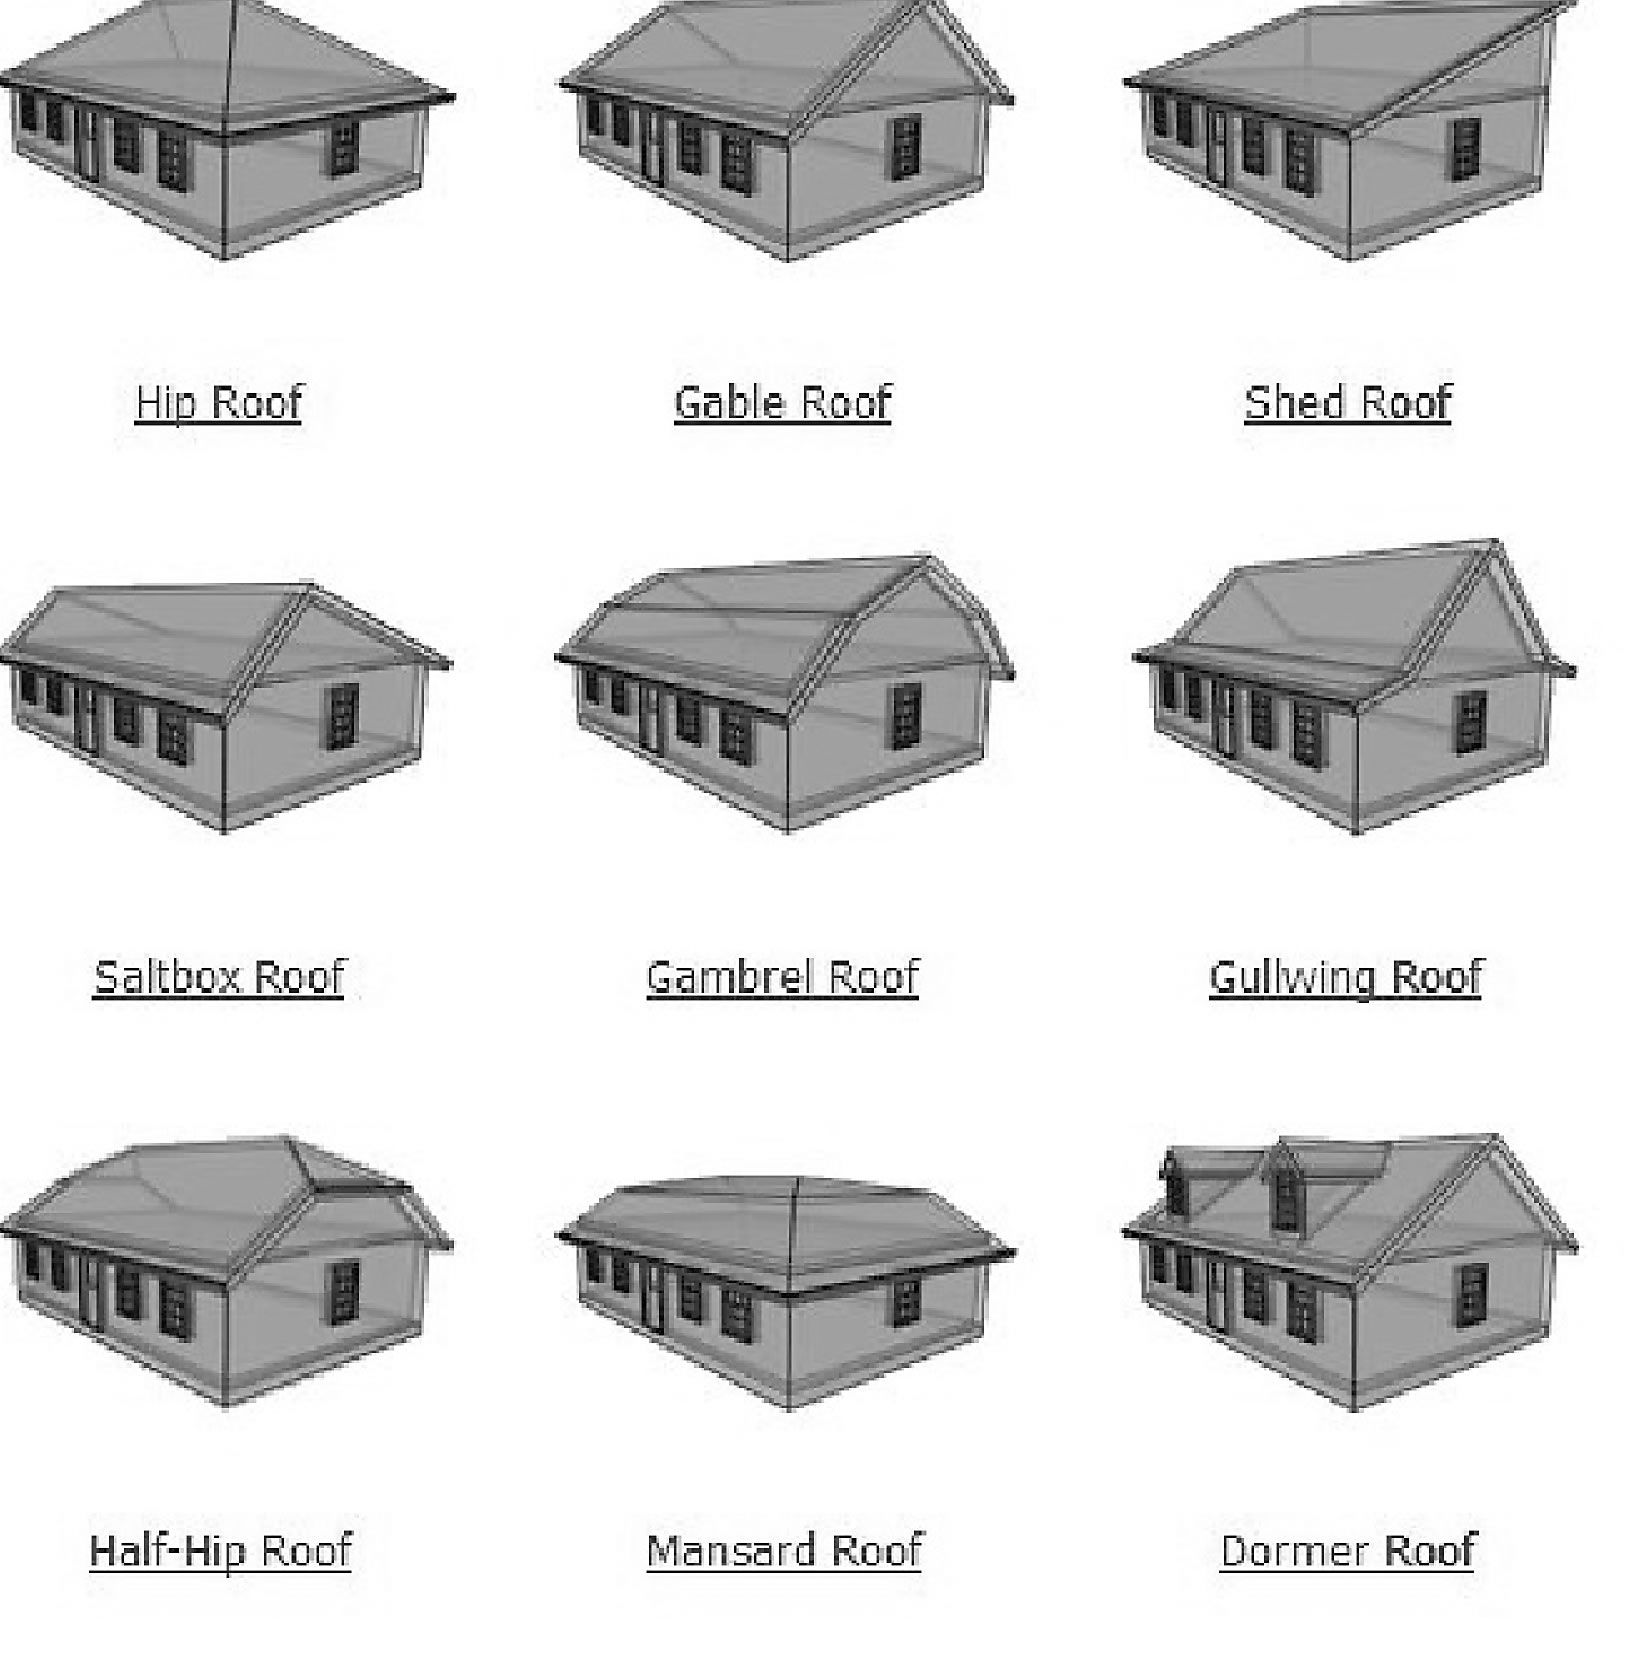 French roof styles roofs and shed dormer roofs they for Different building styles